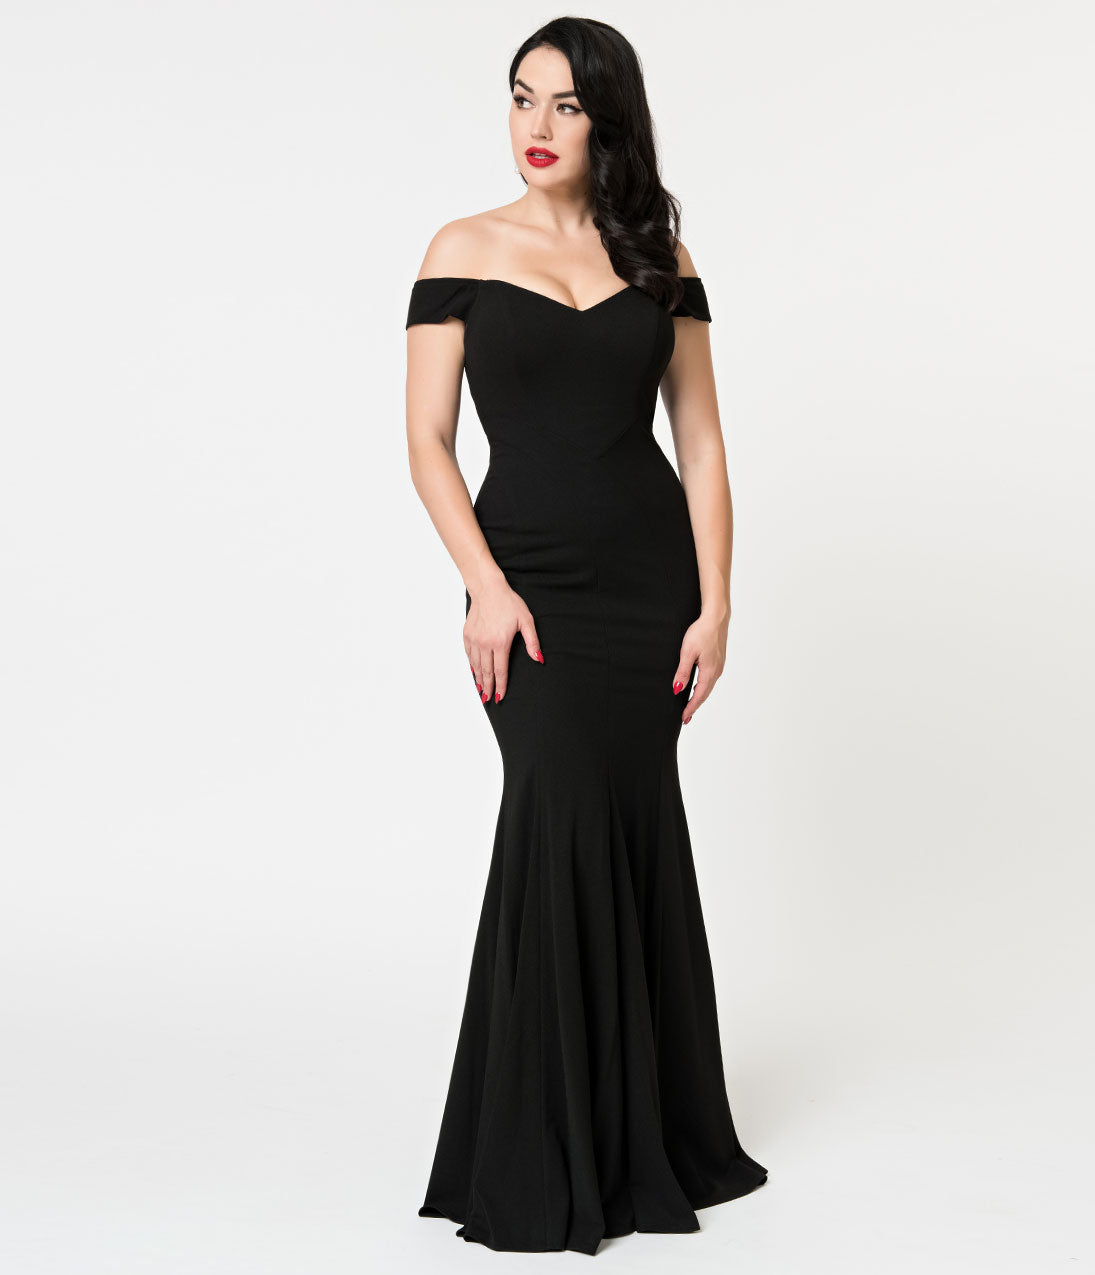 04c8d8f8288 Plus Size Black Ruffle Back Long Dress – Unique Vintage